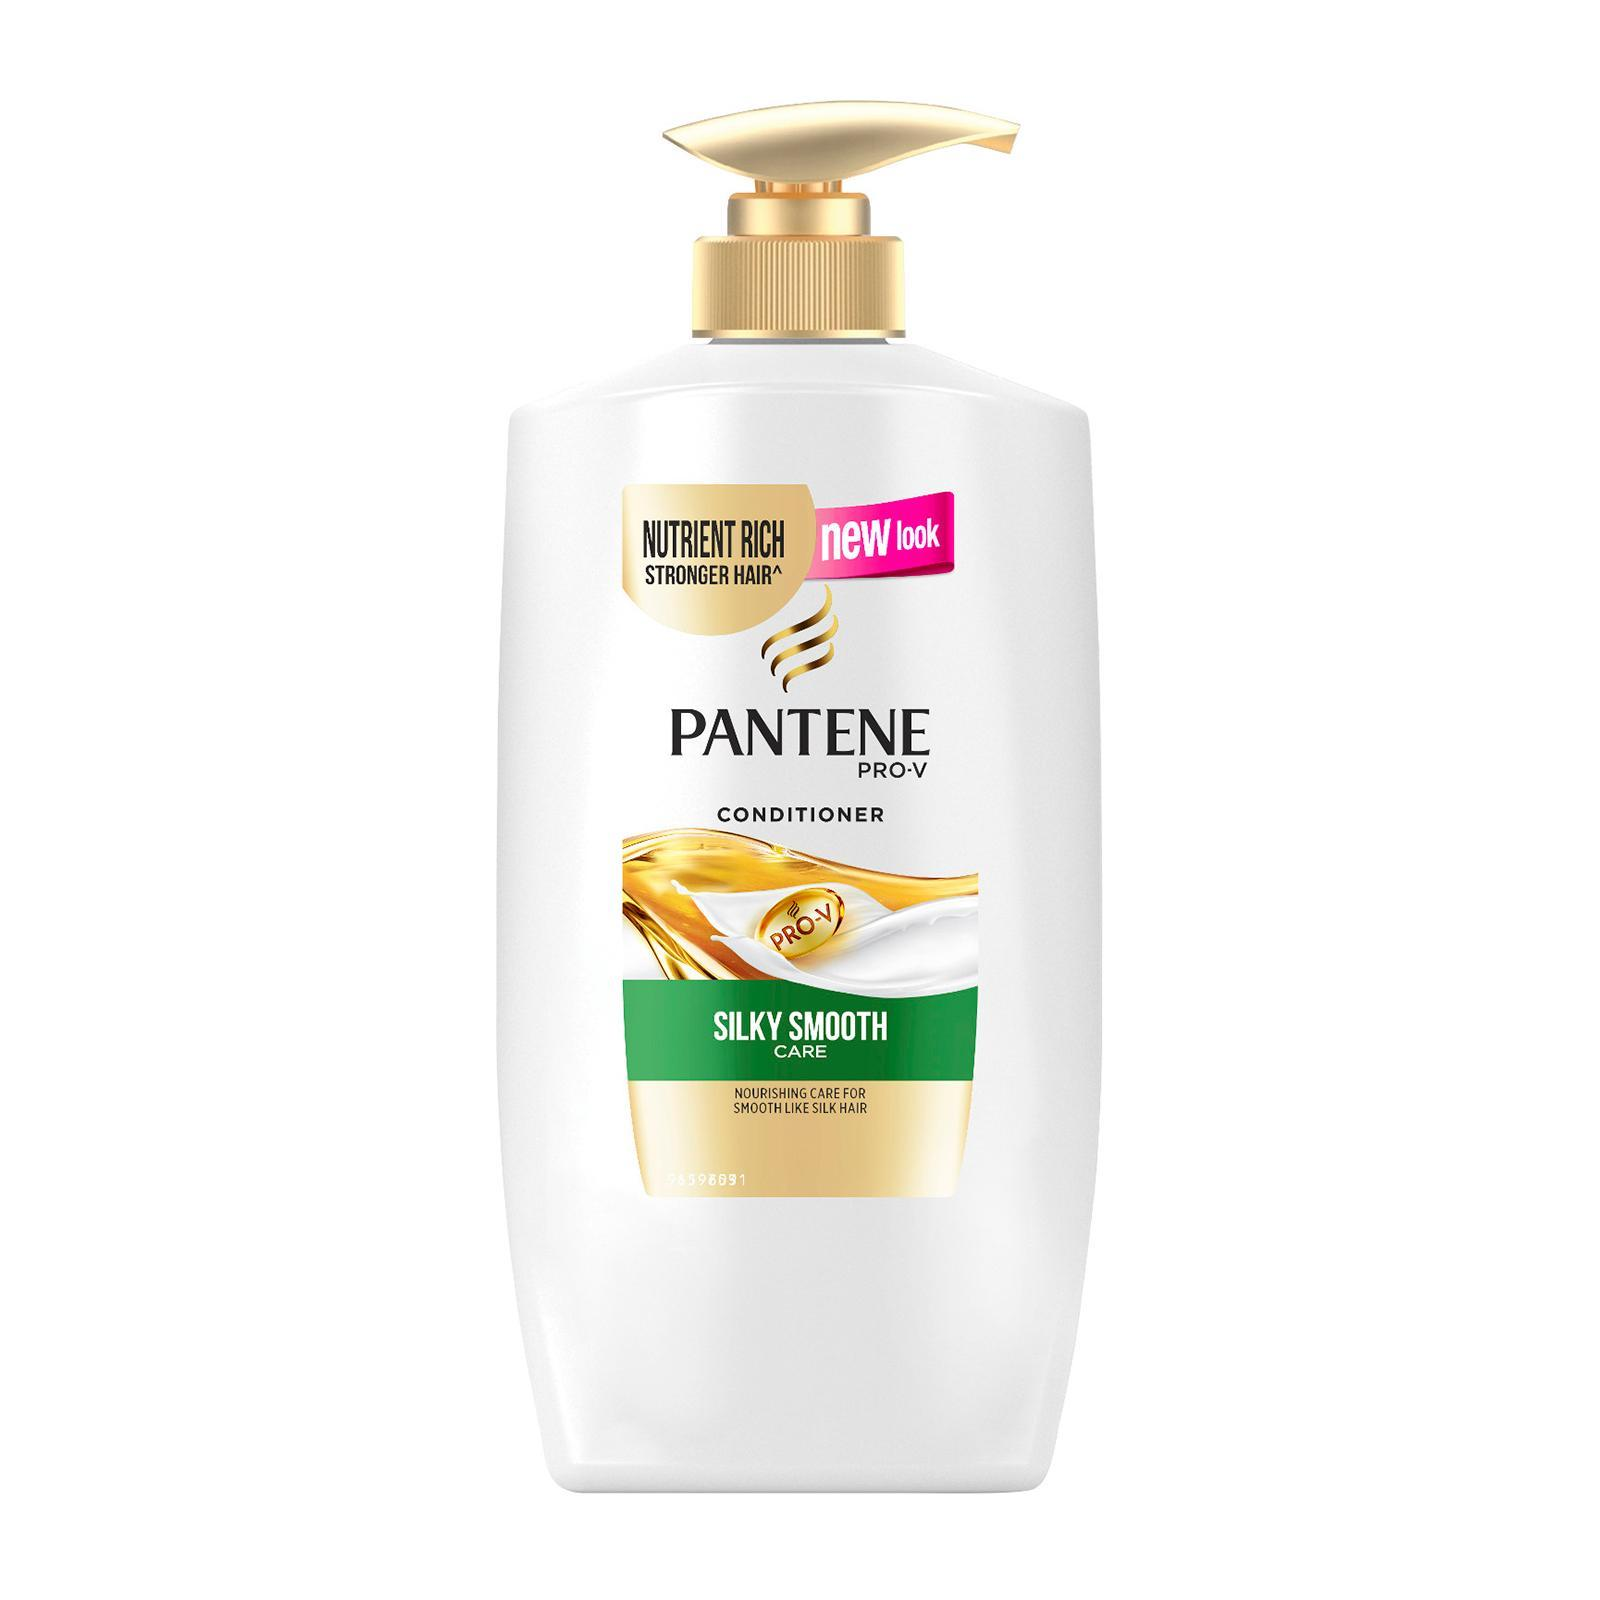 PANTENE pro v silky smooth care conditioner 670ml